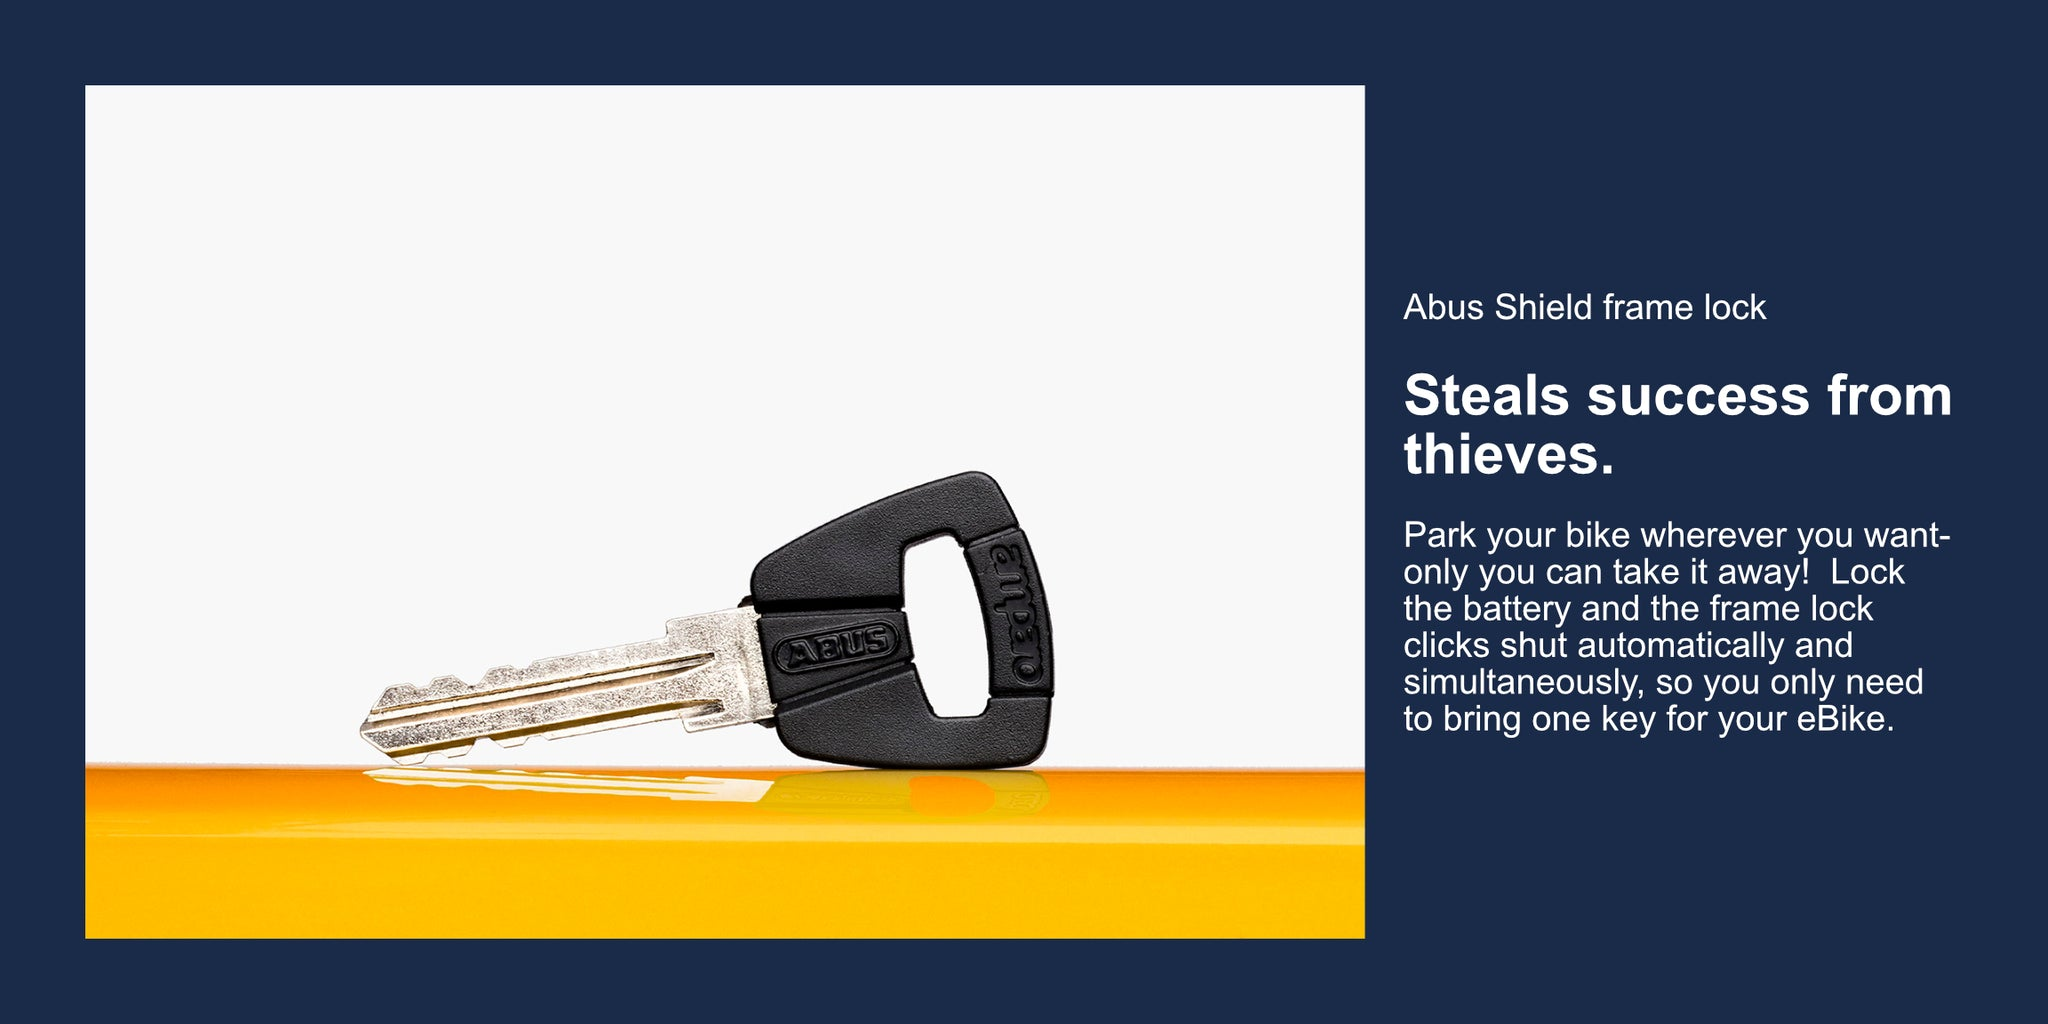 Abus Shield frame lock  Steals success from thieves.  Park your bike wherever you want- only you can take it away!  Lock the battery and the frame lock clicks shut automatically and simultaneously, so you only need to bring one key for your eBike.